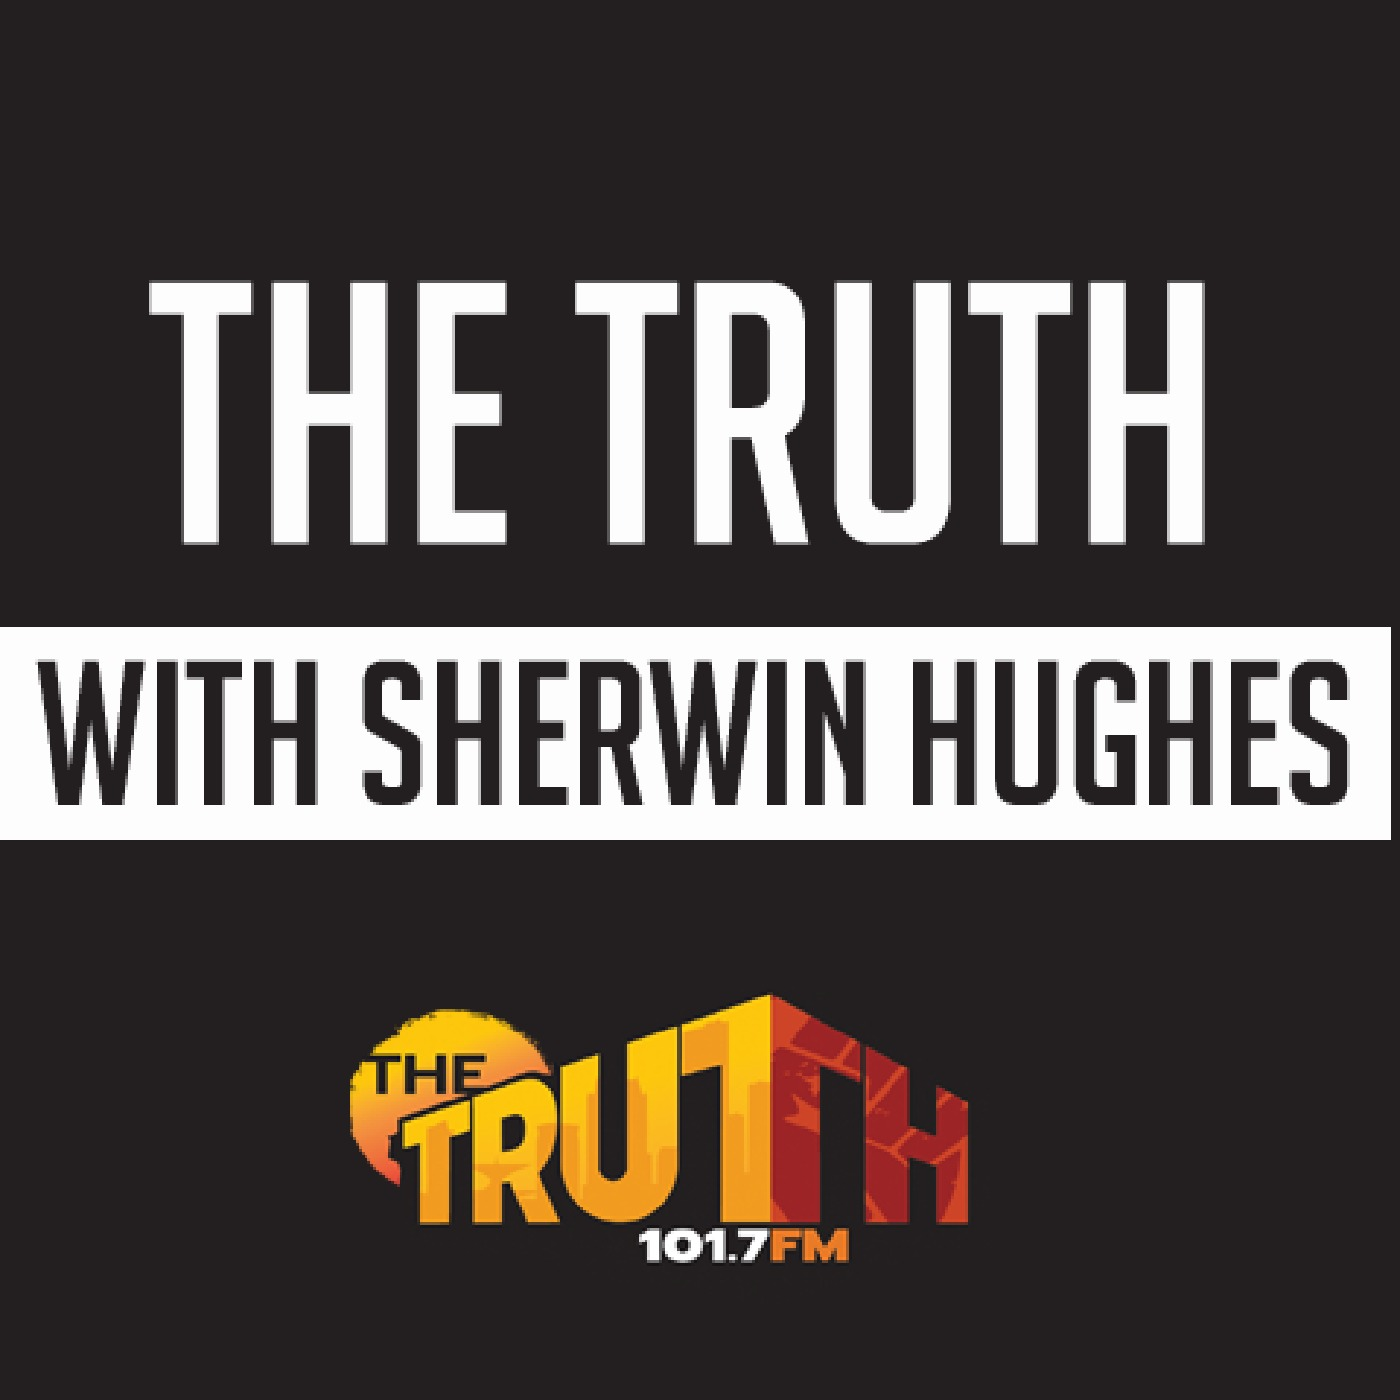 The Truth with Sherwin Hughes